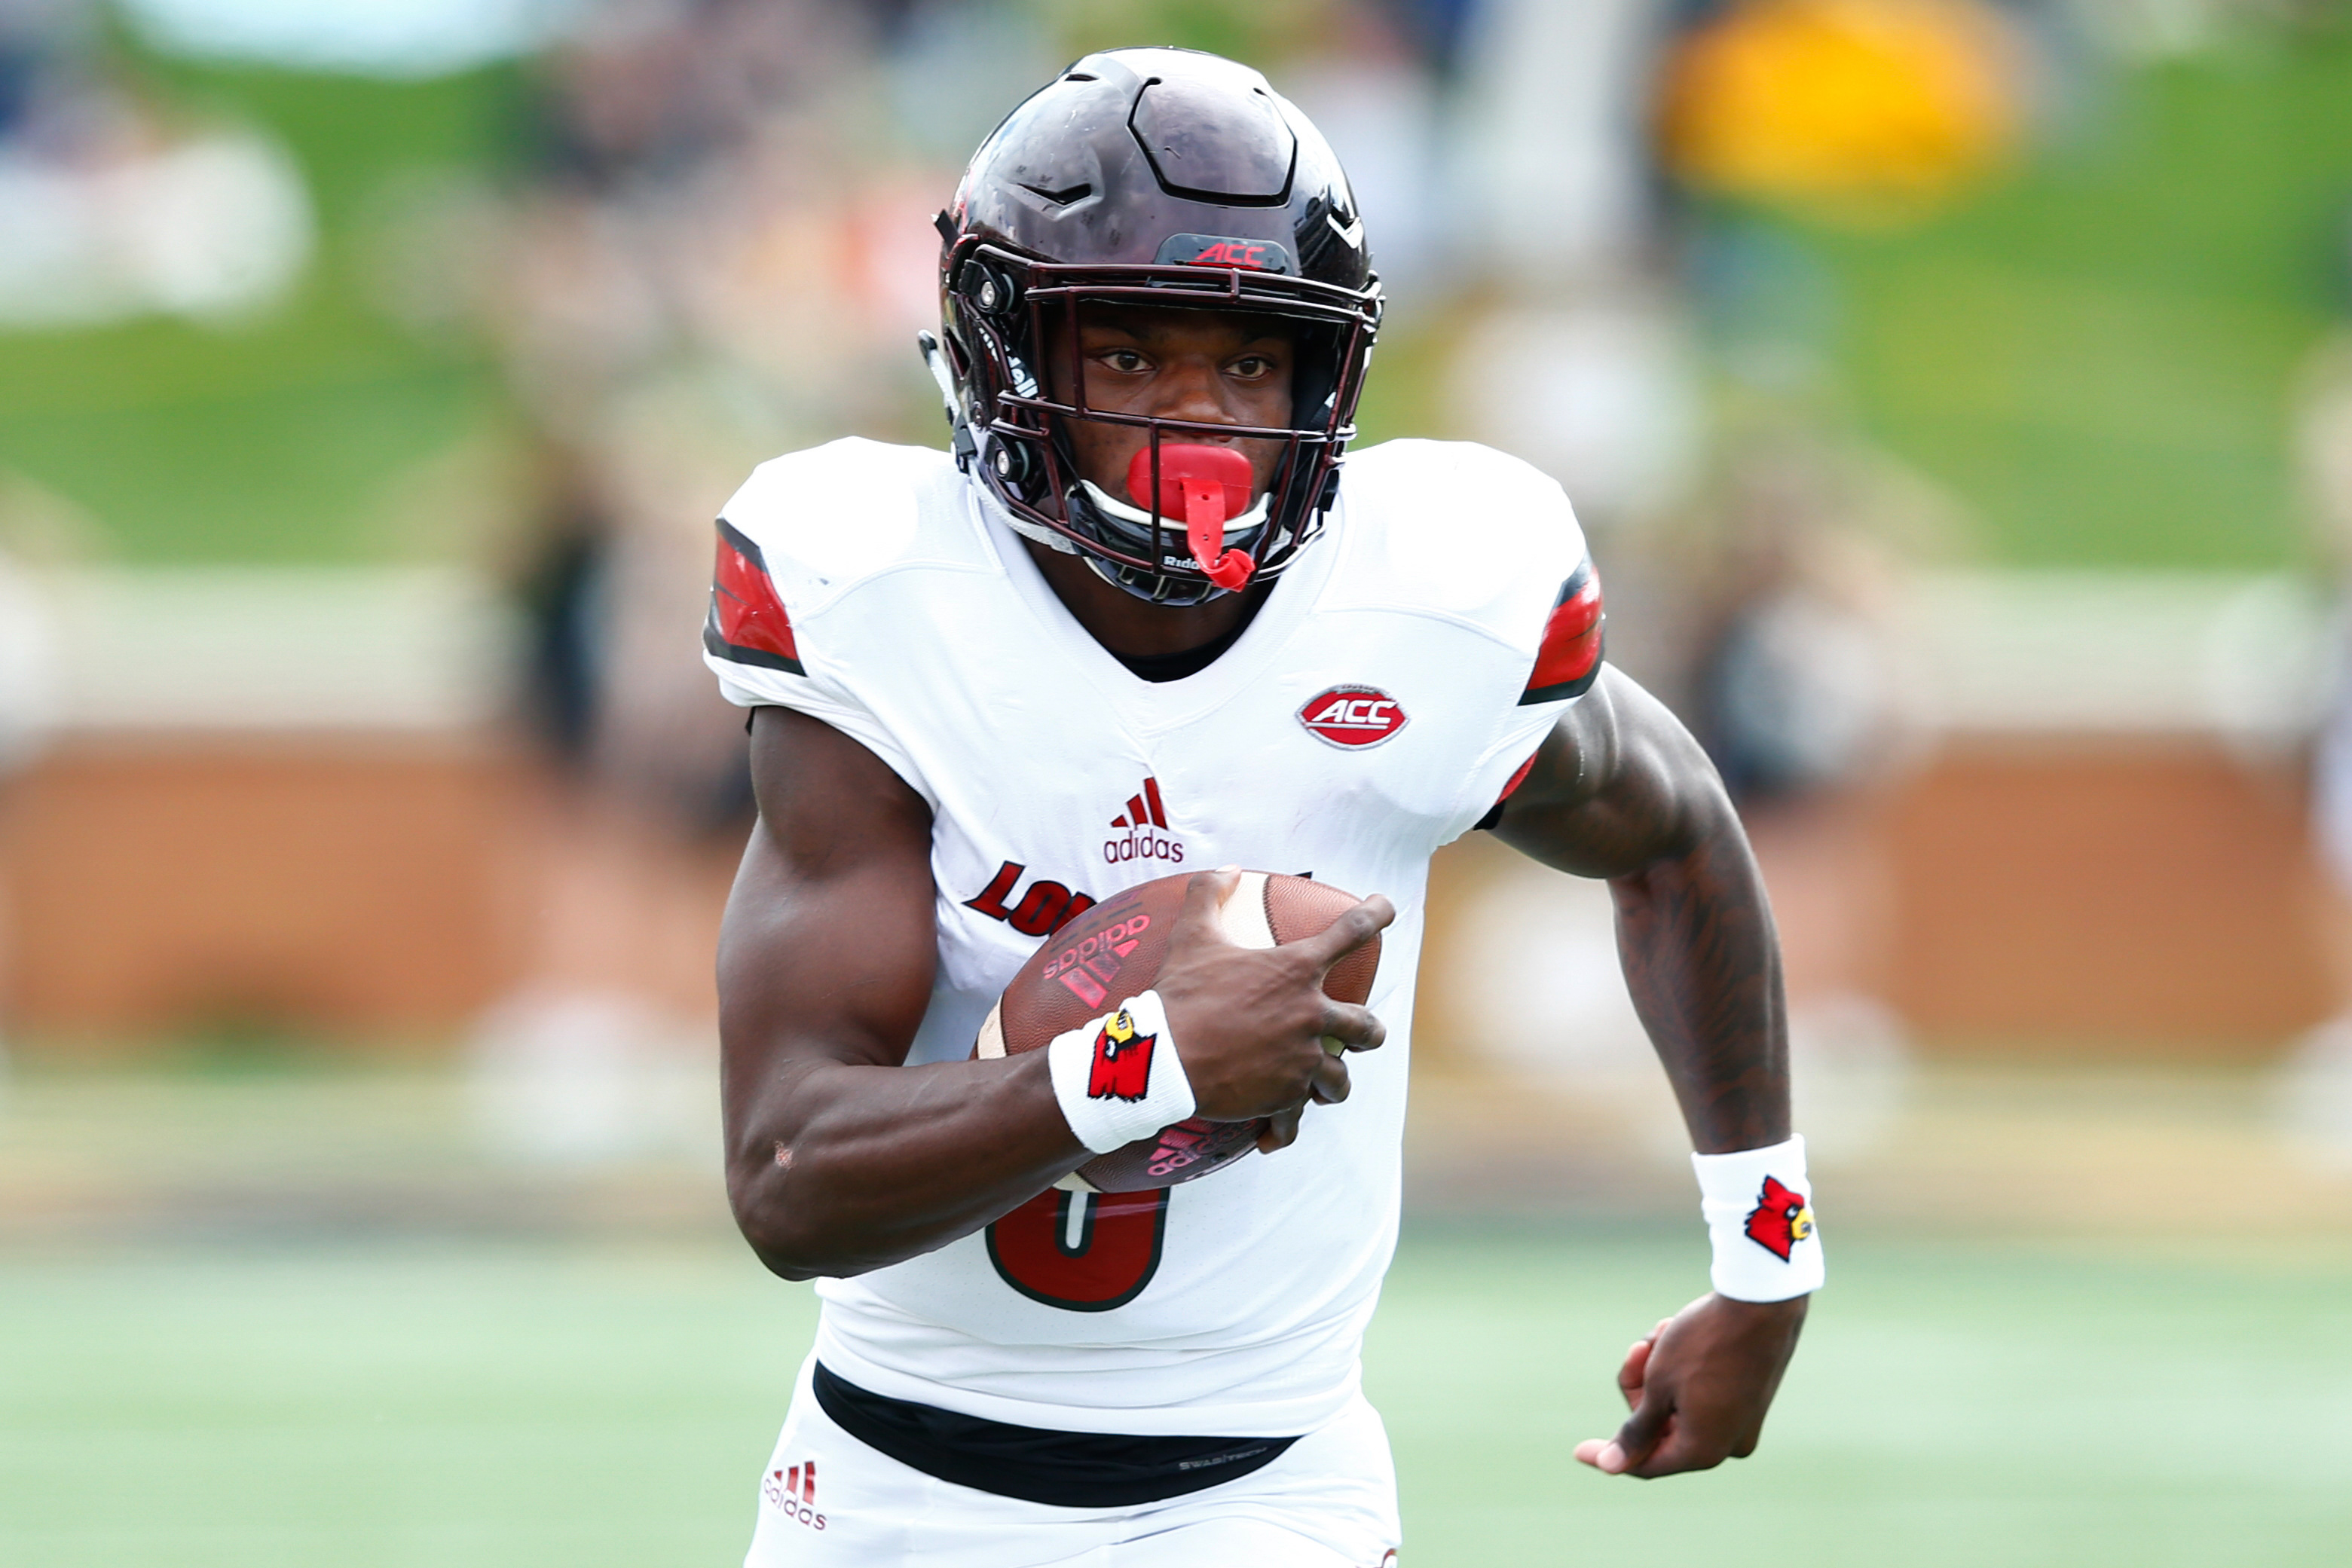 Lamar Jackson, college football's most electric player, declares for the NFL draft